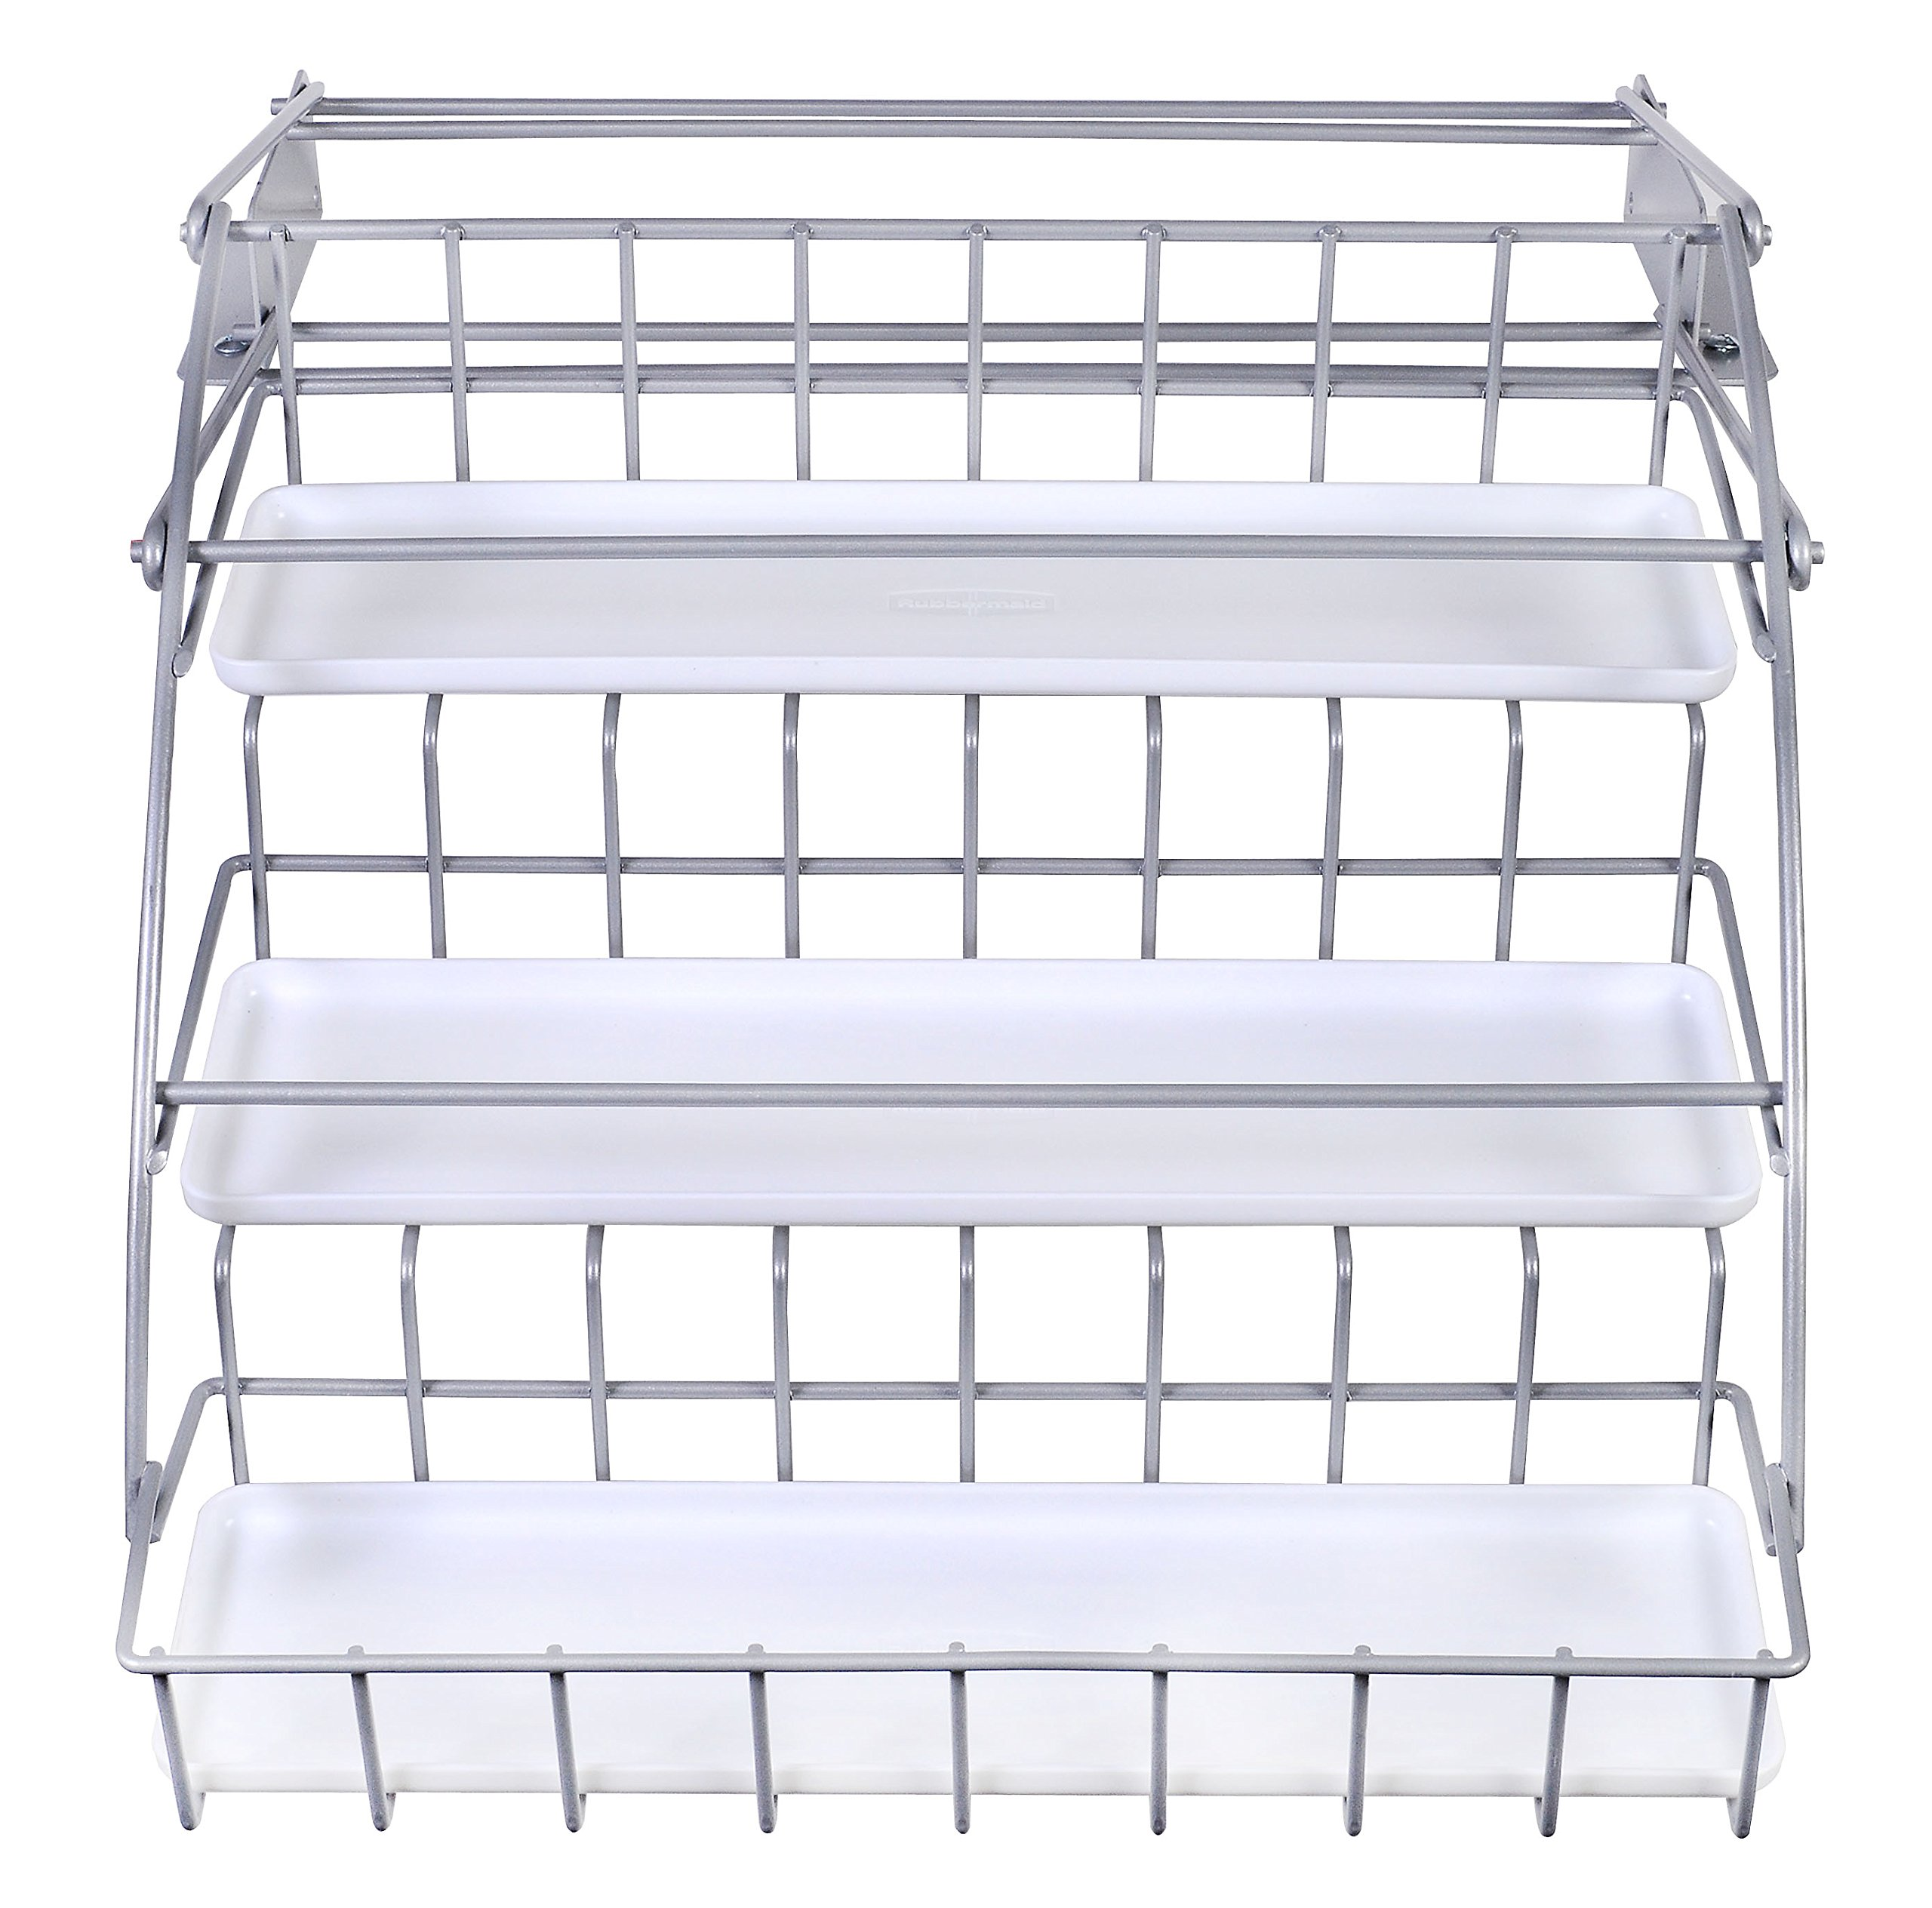 Rubbermaid Pull Down Spice Rack, Clear 1951590 by Rubbermaid